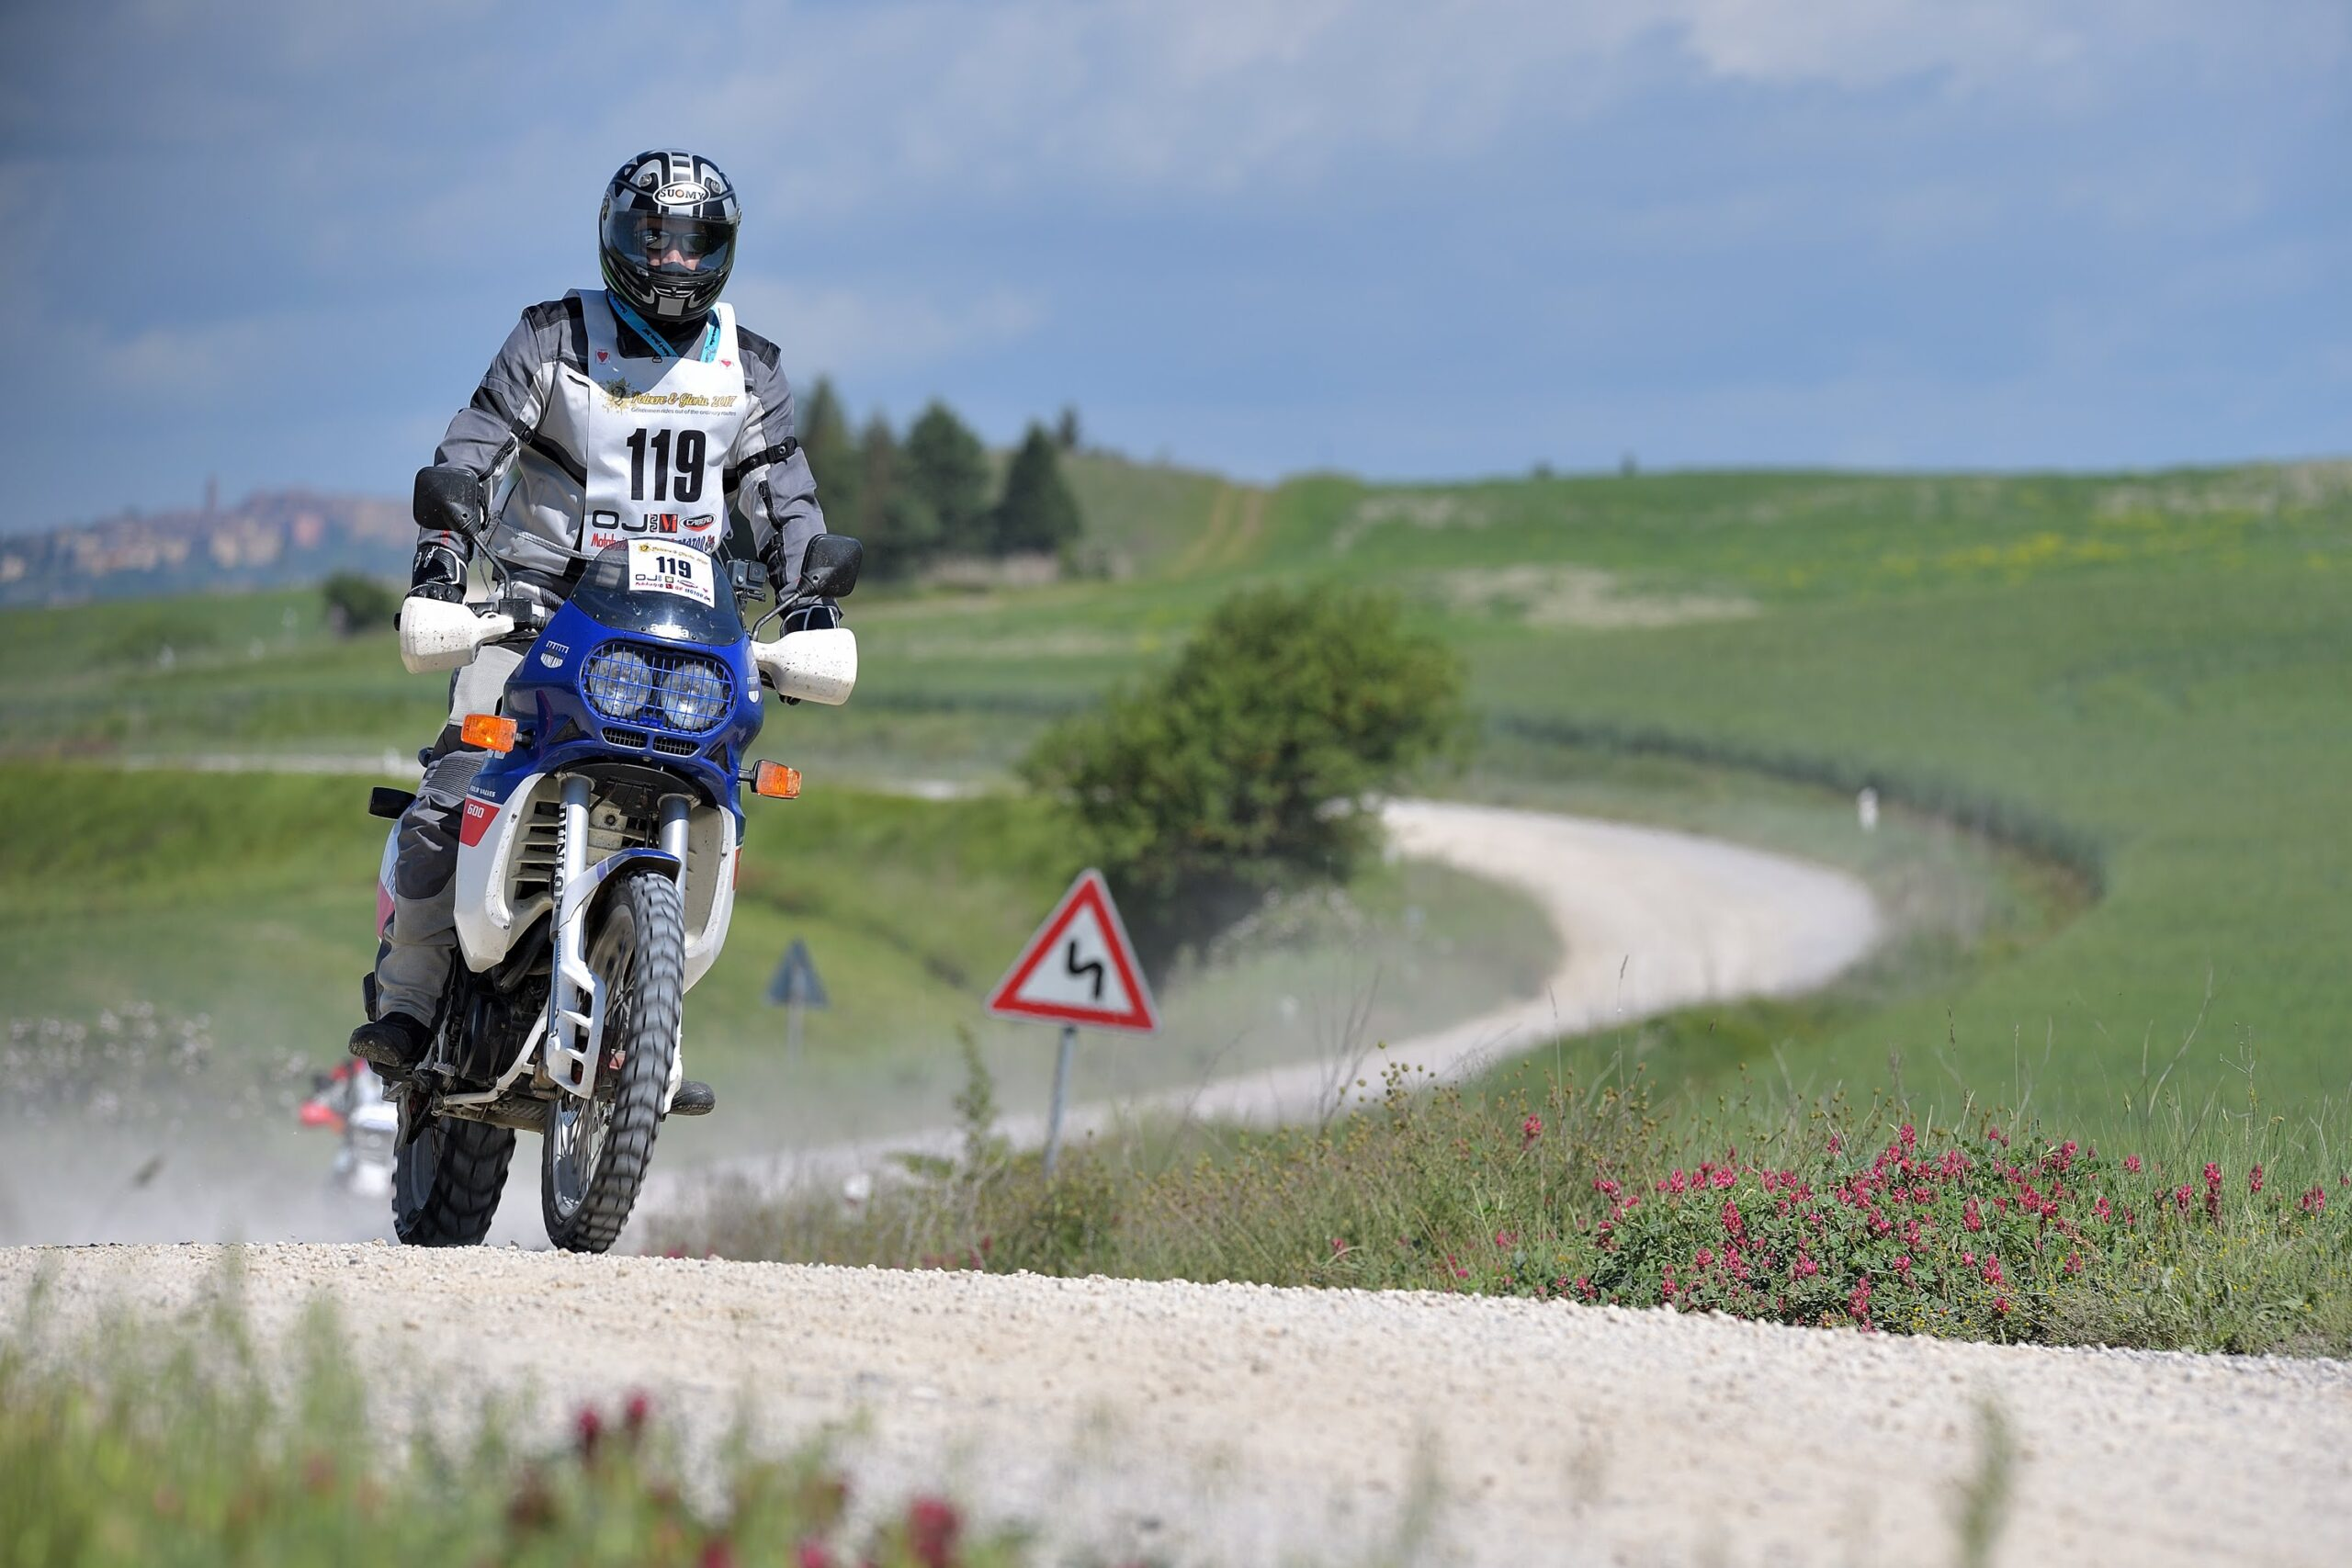 italiainpiega-evento-moto off road 2021